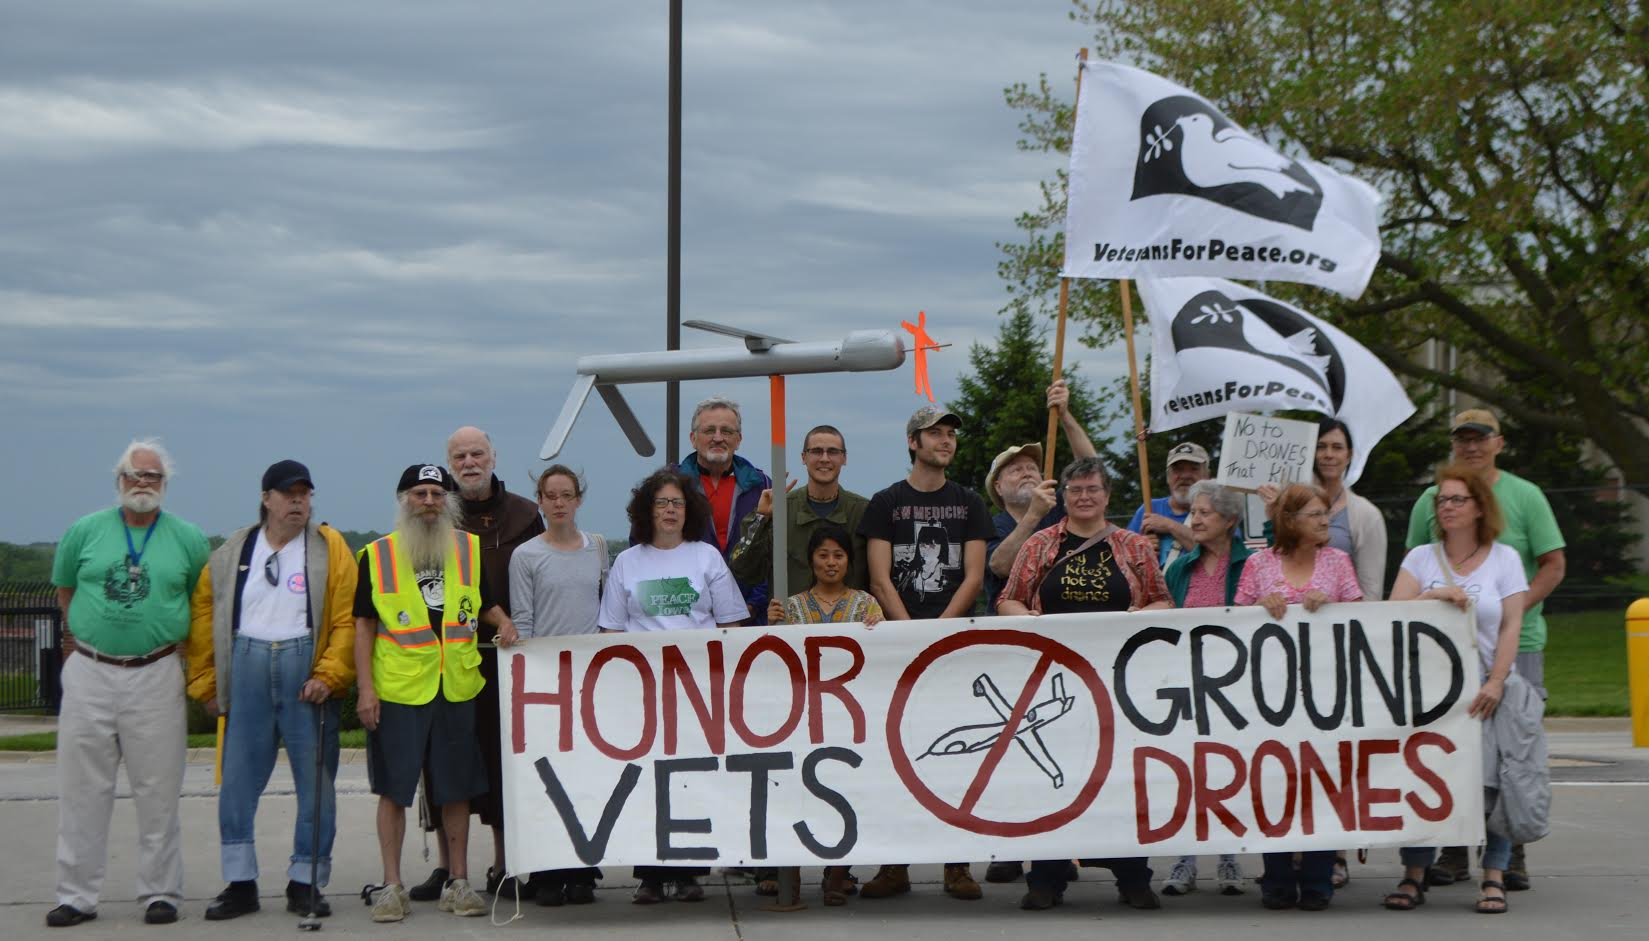 Catholic Workers and Veterans For Peace rally against U.S. drone killing on May 18, 2019, Armed Forces Day, outside the Des Moines Air National Guard Base drone control center.